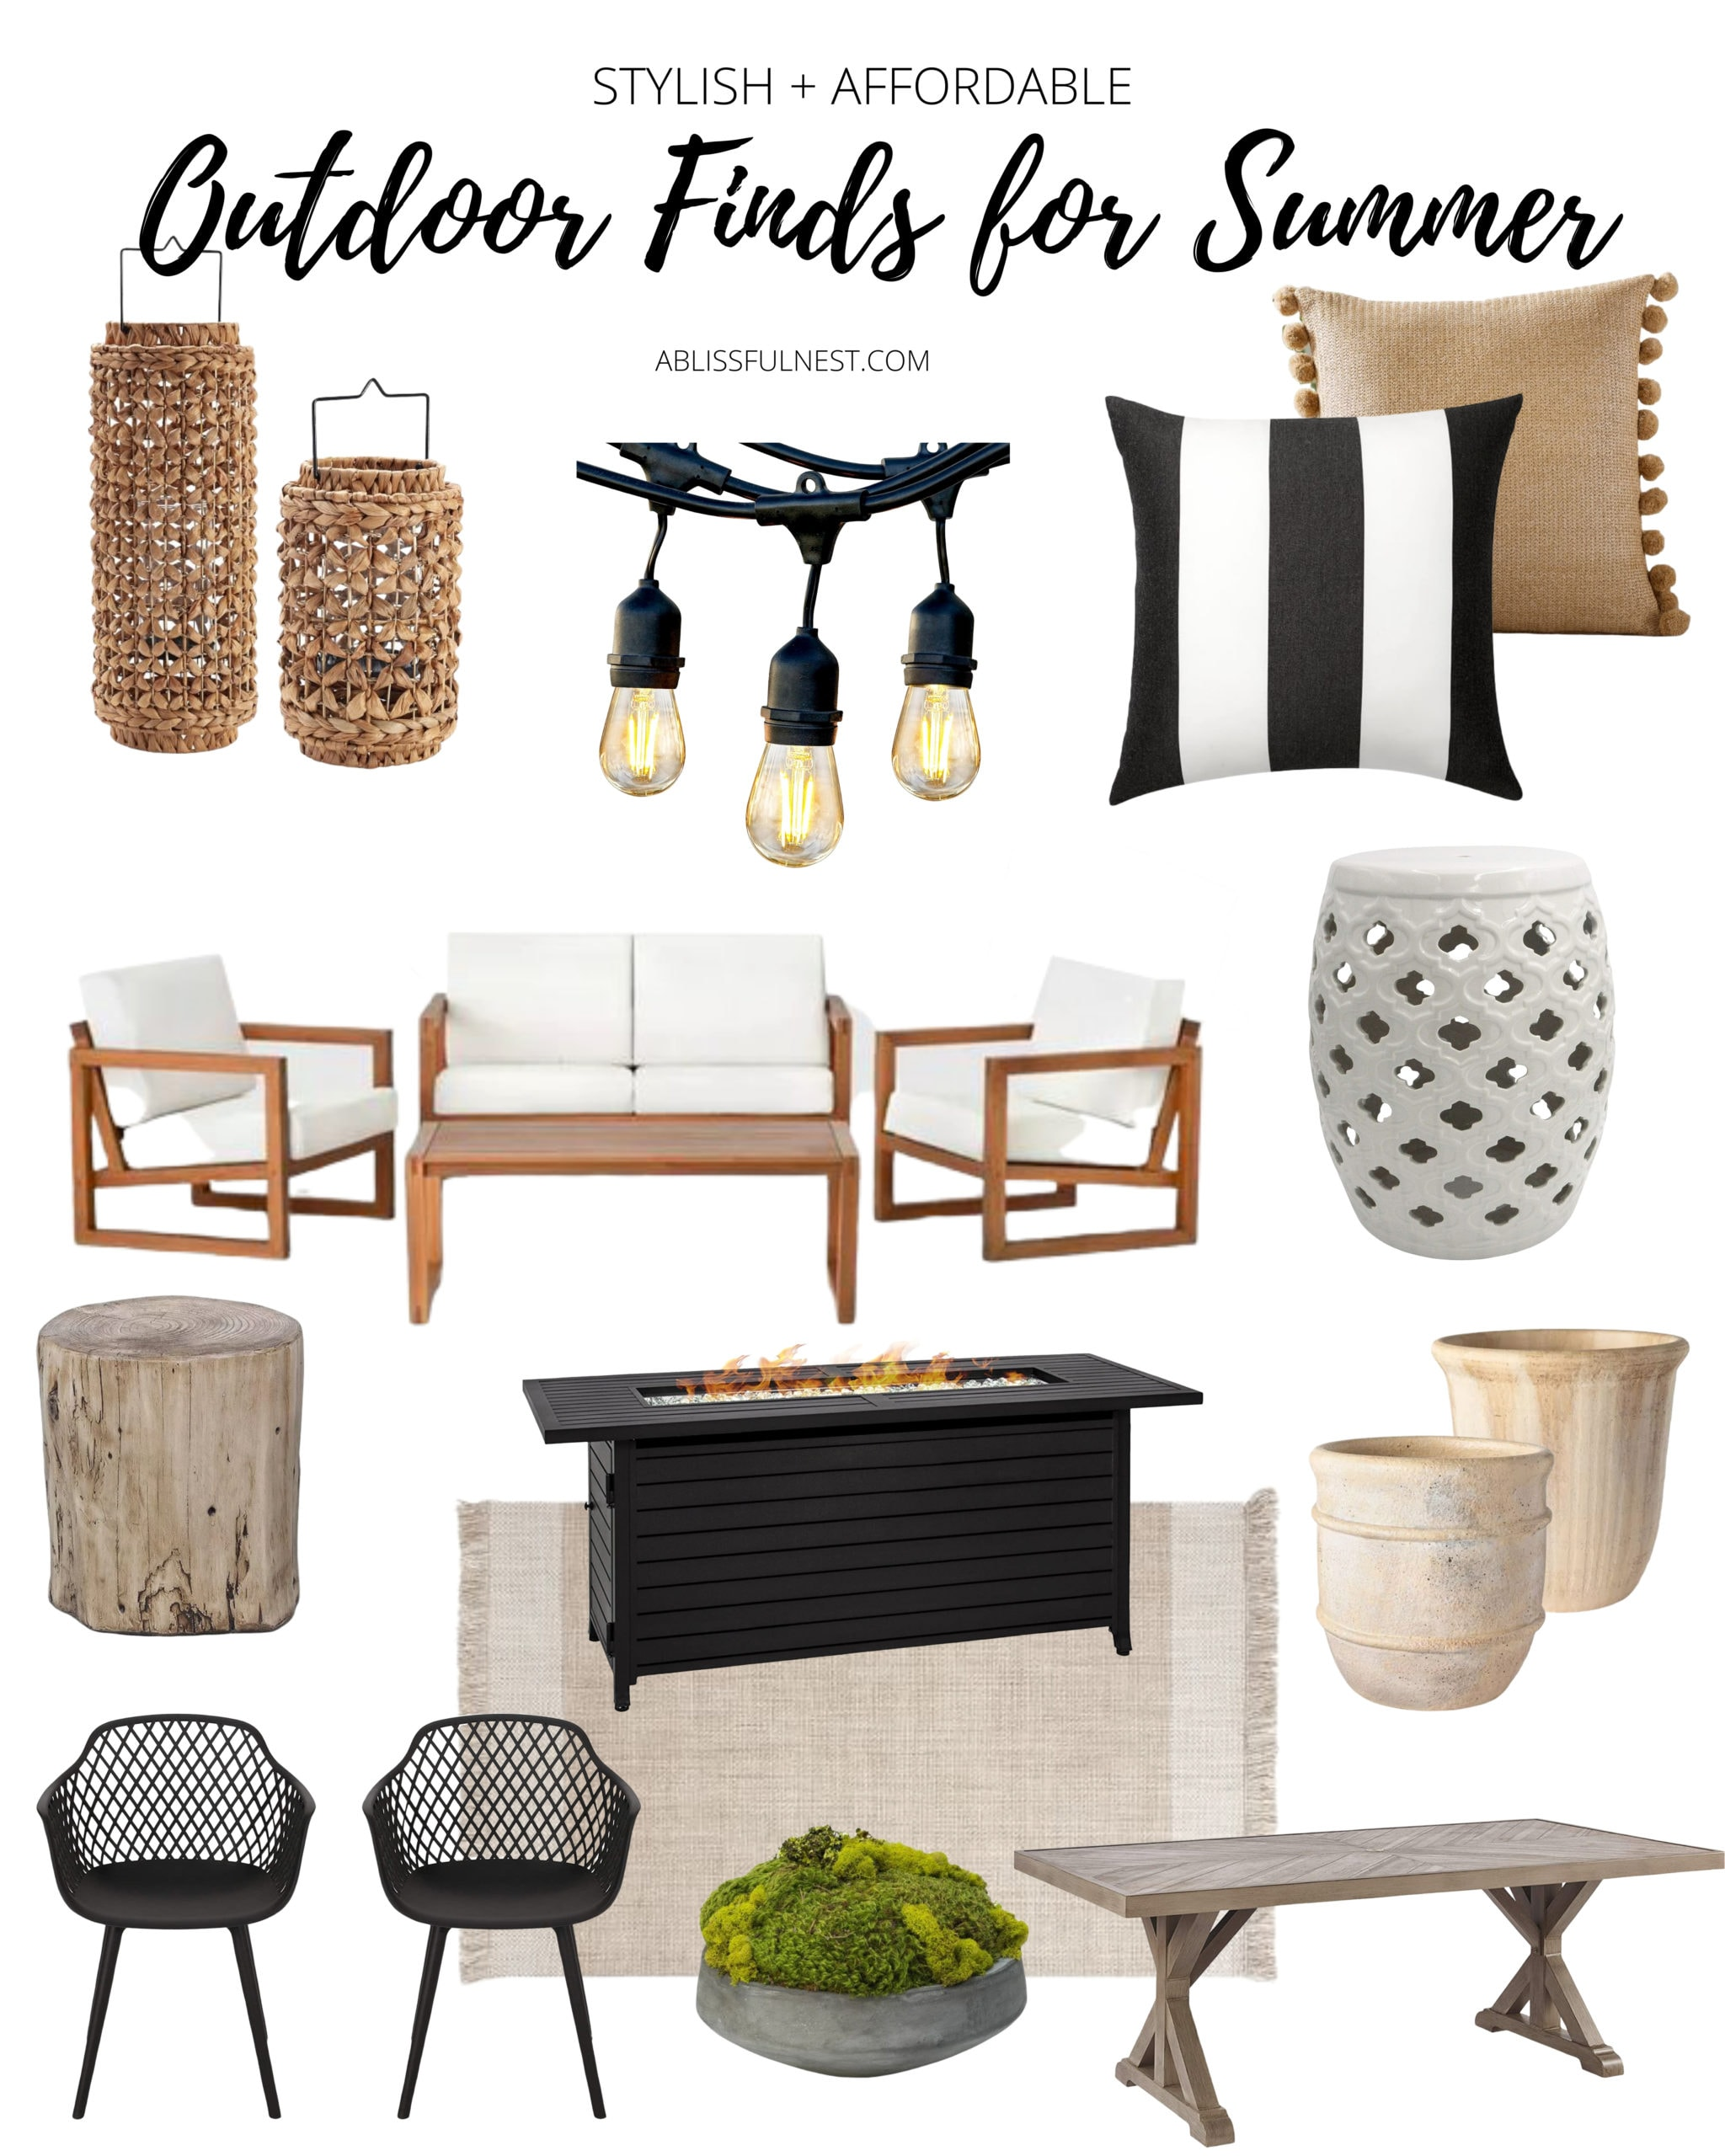 Stylish + Affordable Outdoor Decor Finds For Summer